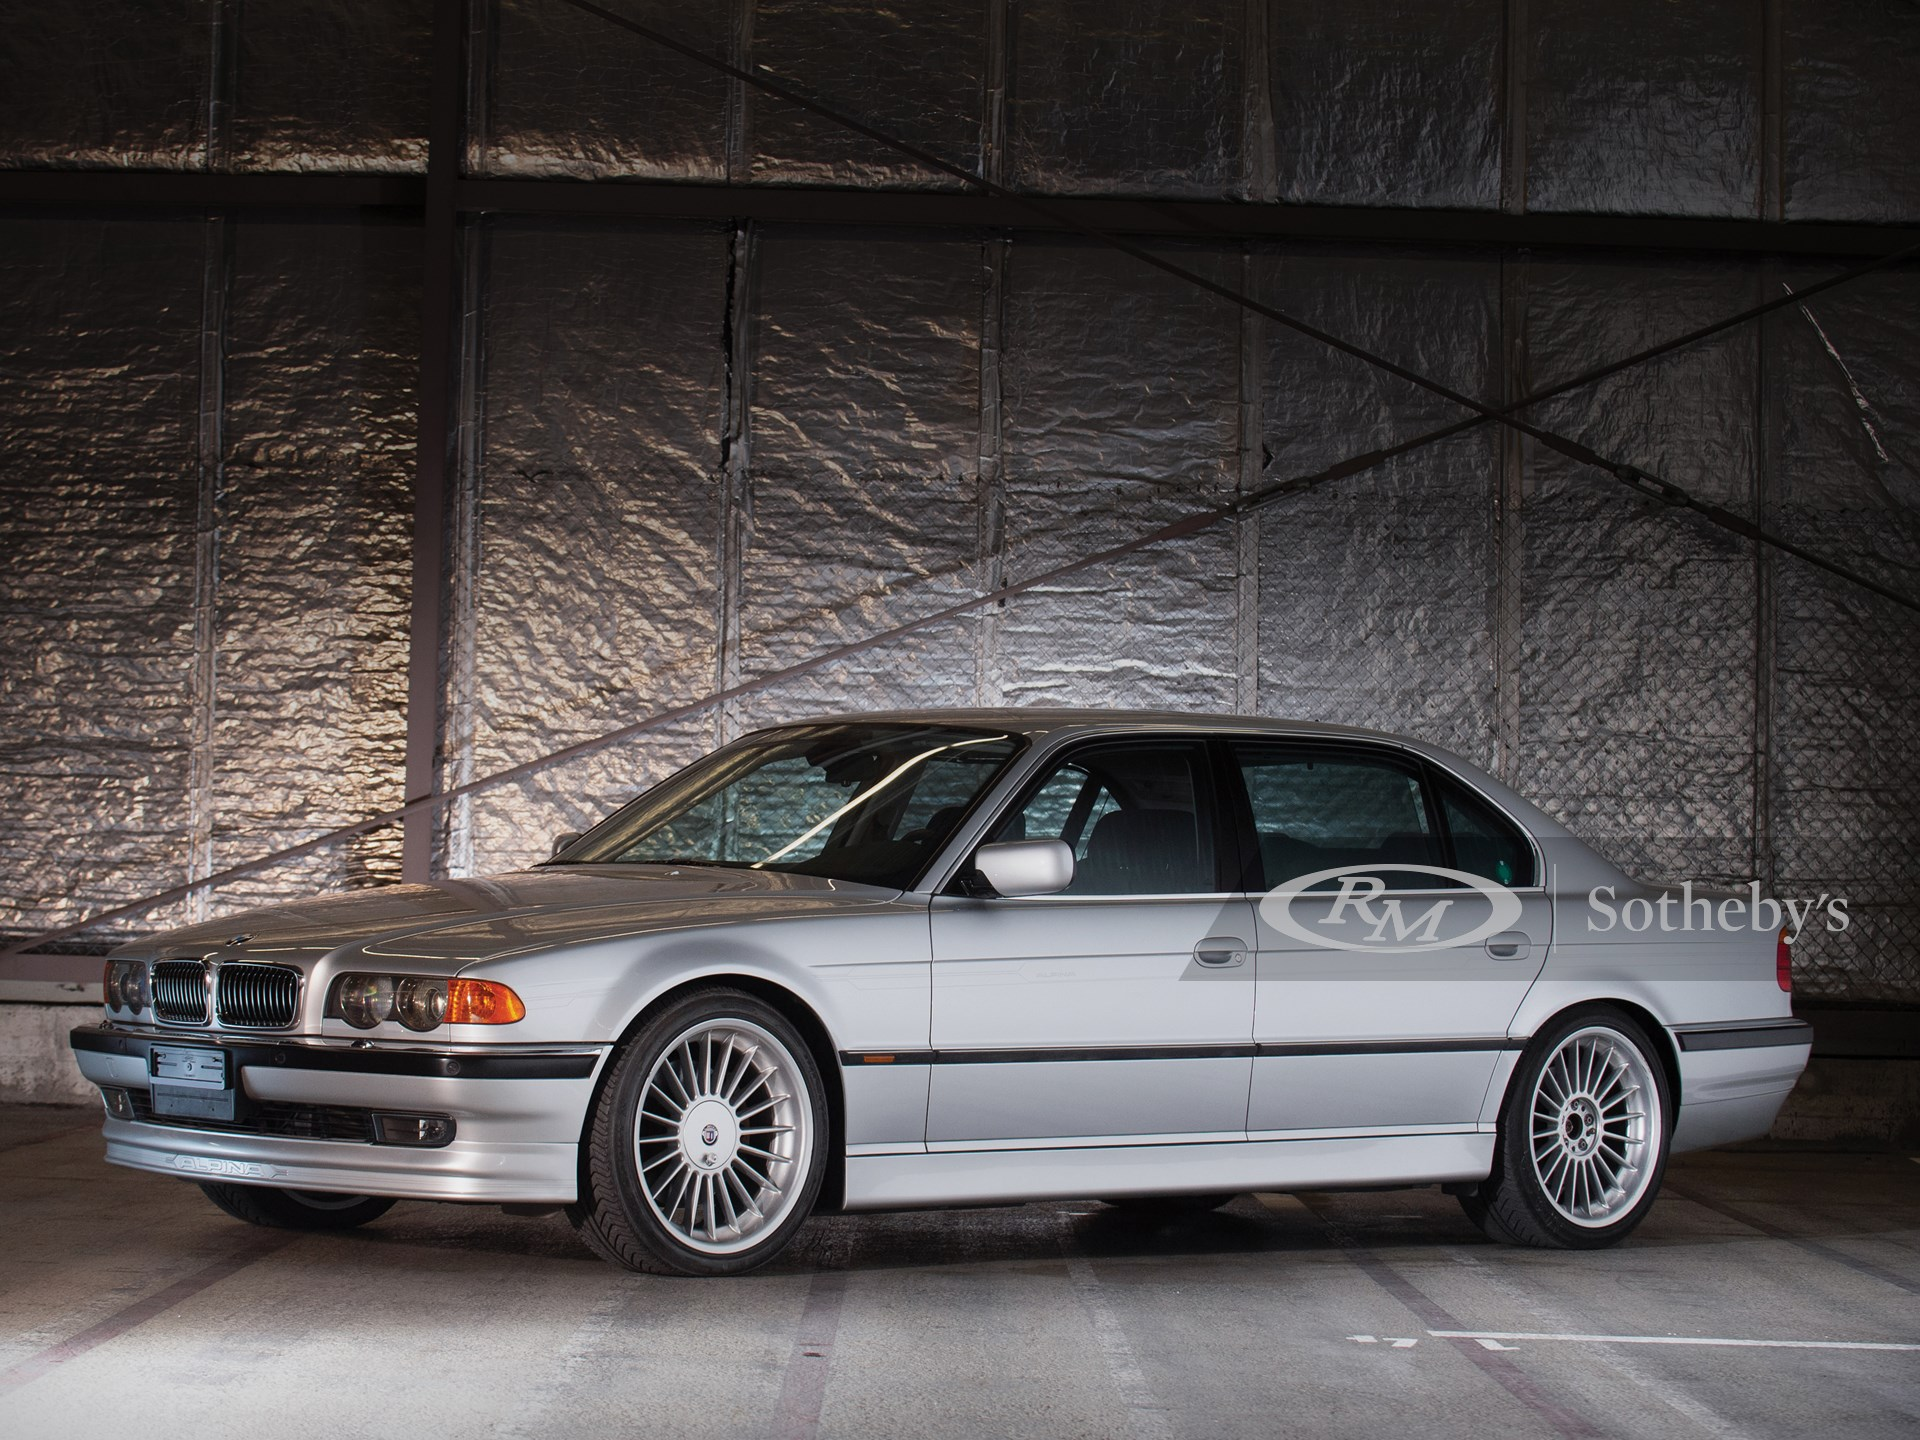 2000 Bmw Alpina B12 6 0 Langversion Essen 2019 Rm Sotheby S